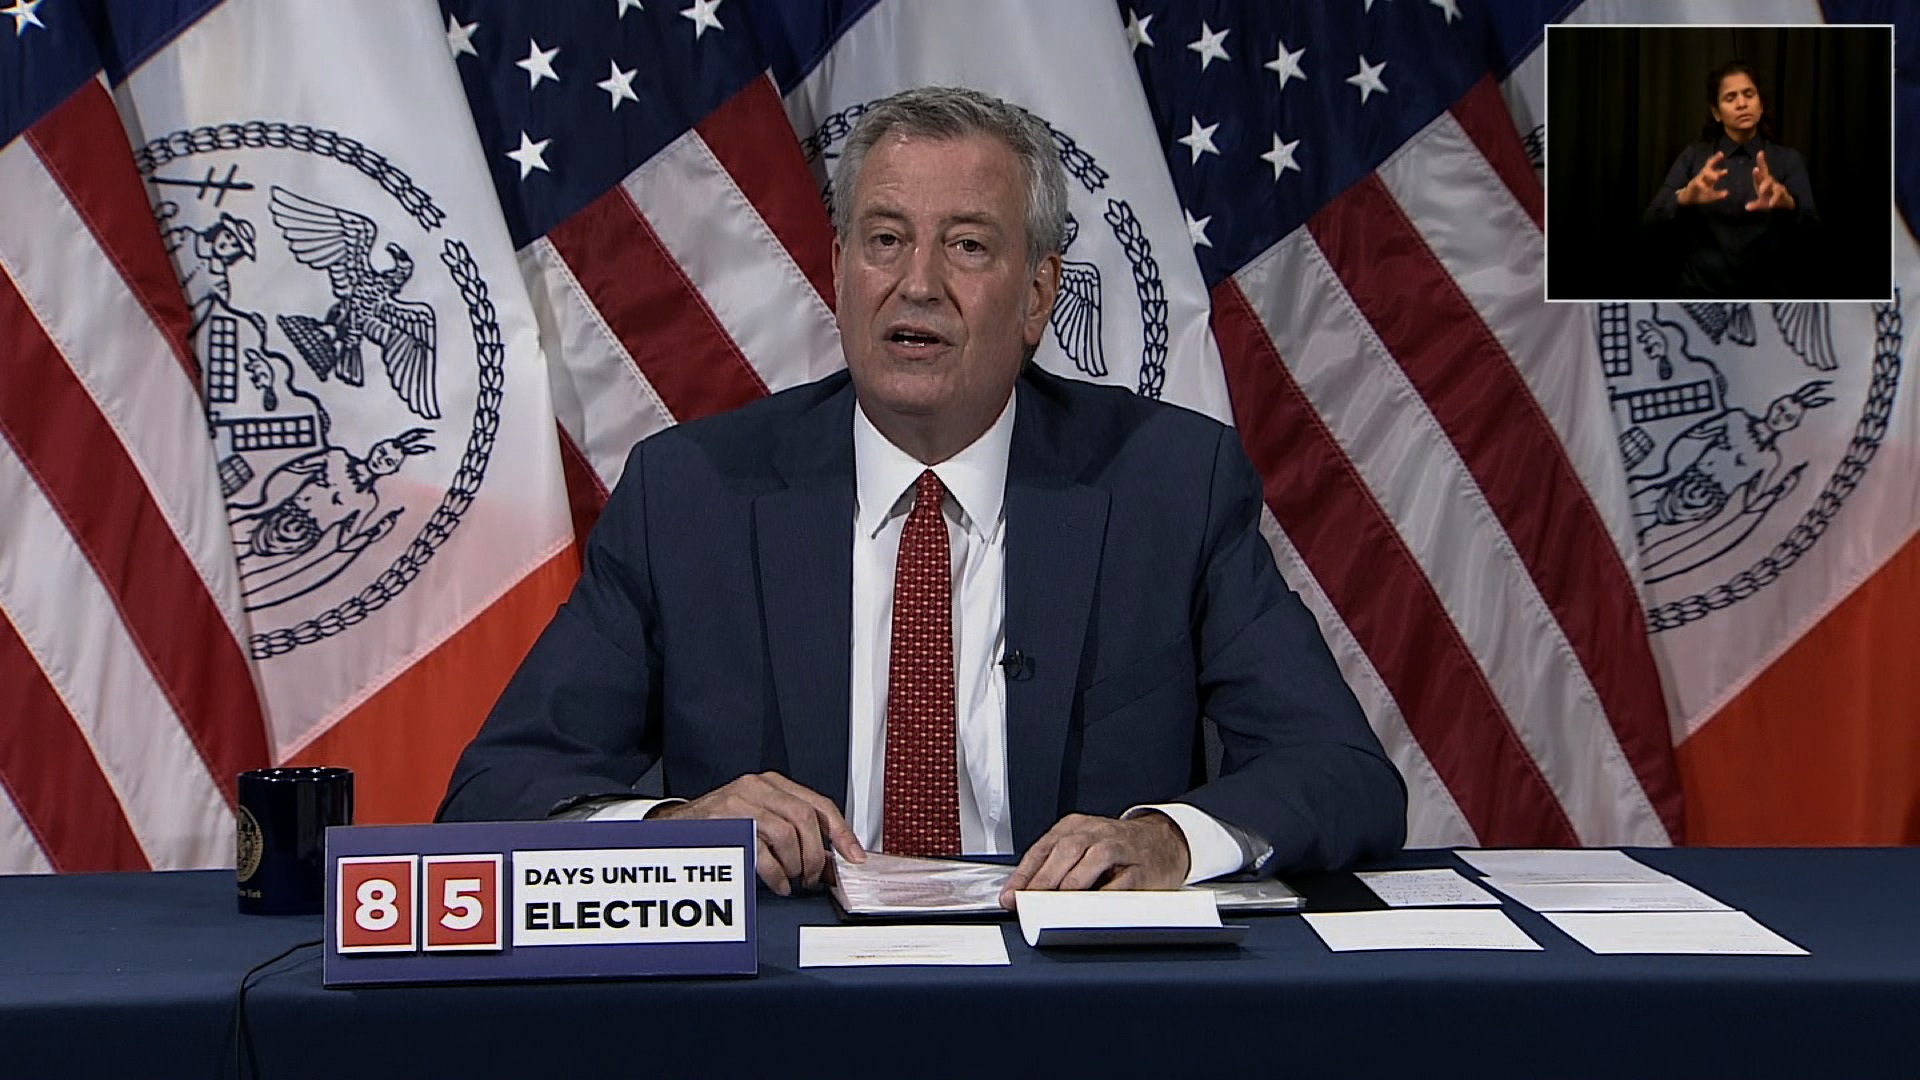 New York City Mayor Bill de Blasio speaks during a press conference in New York City on August 10.